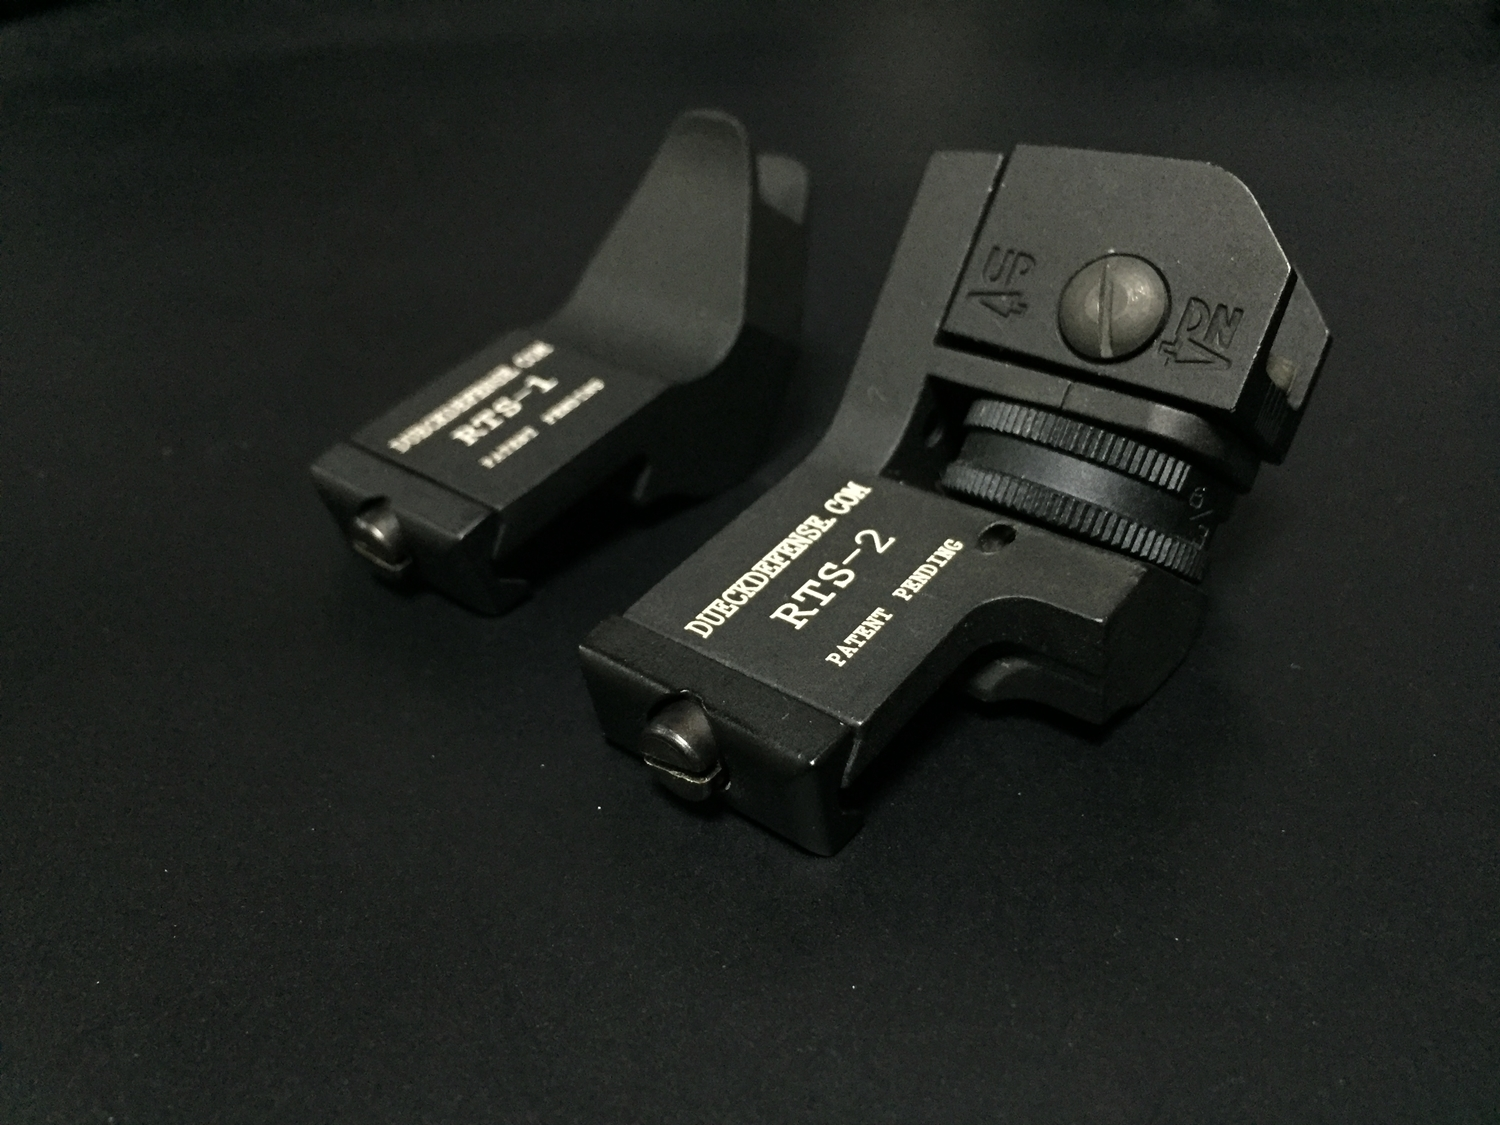 10 RAPID TRANSITION SIGHT FRONT & REAR DUECK DEFENSE TYPE ラピッドトランジションサイト オフセットサイト カスタム 取付 実物 レプリカ 比較